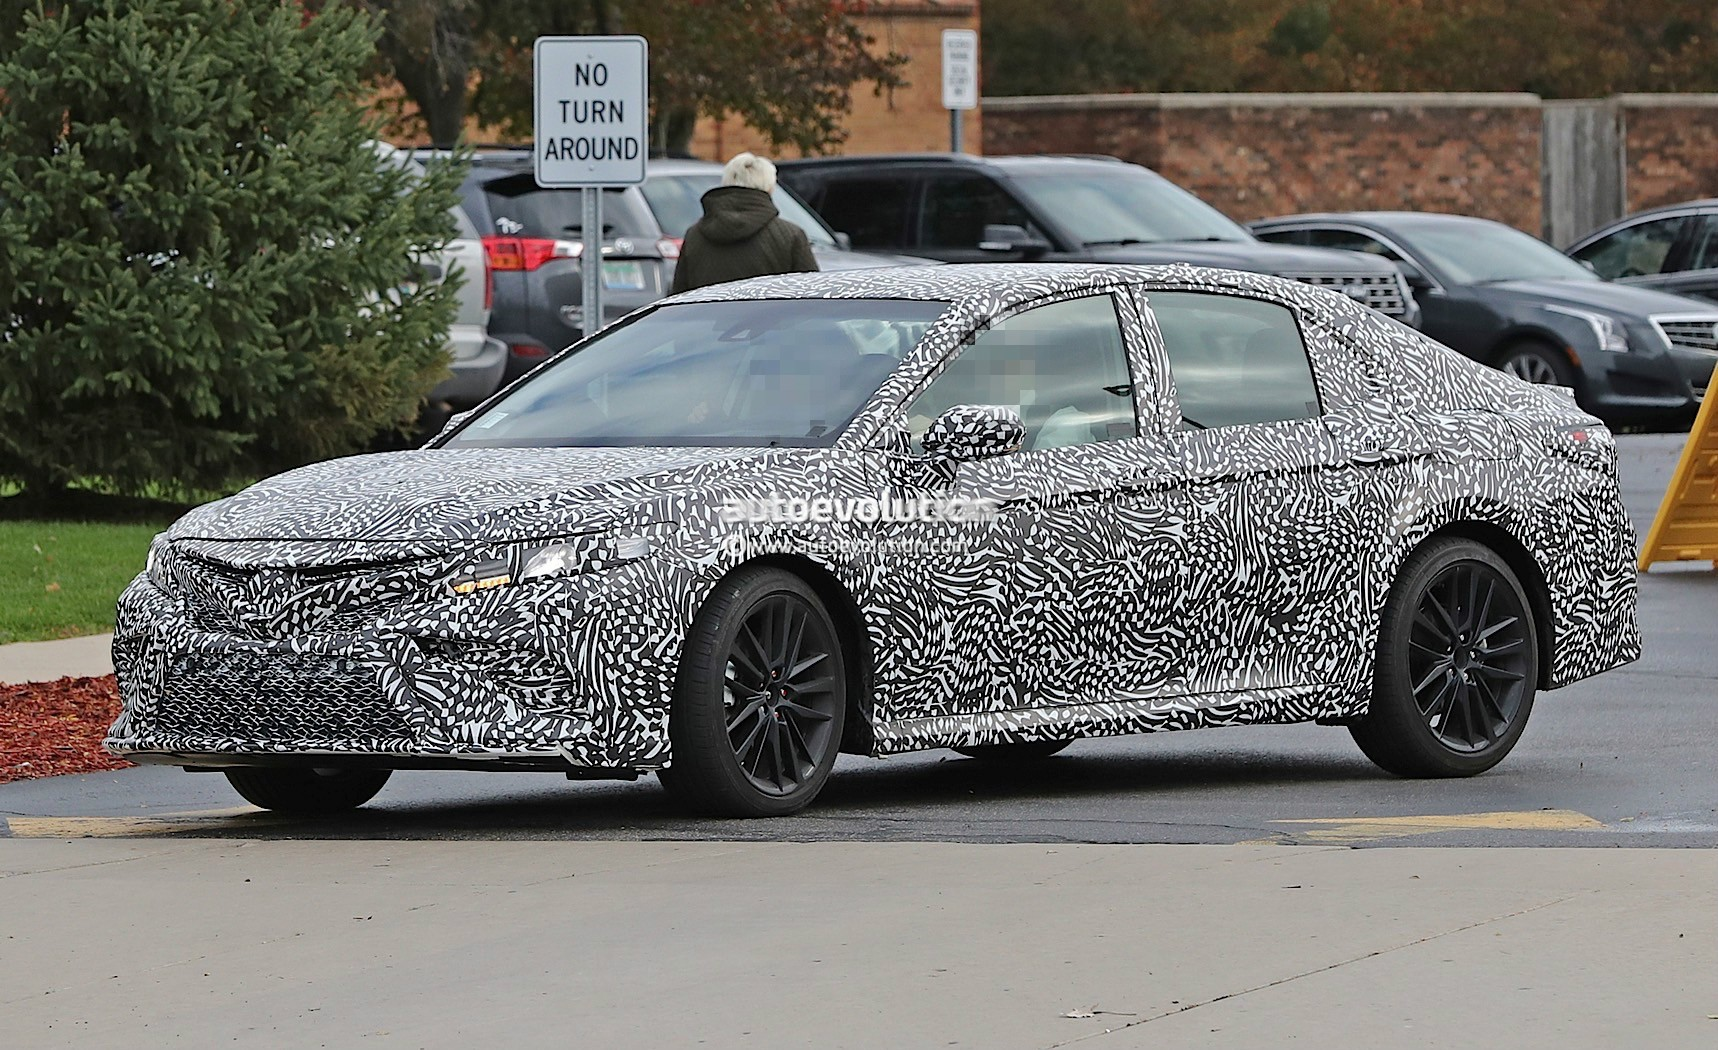 2018 toyota camry teased ahead of 2017 detroit auto show unveiling autoevolution. Black Bedroom Furniture Sets. Home Design Ideas